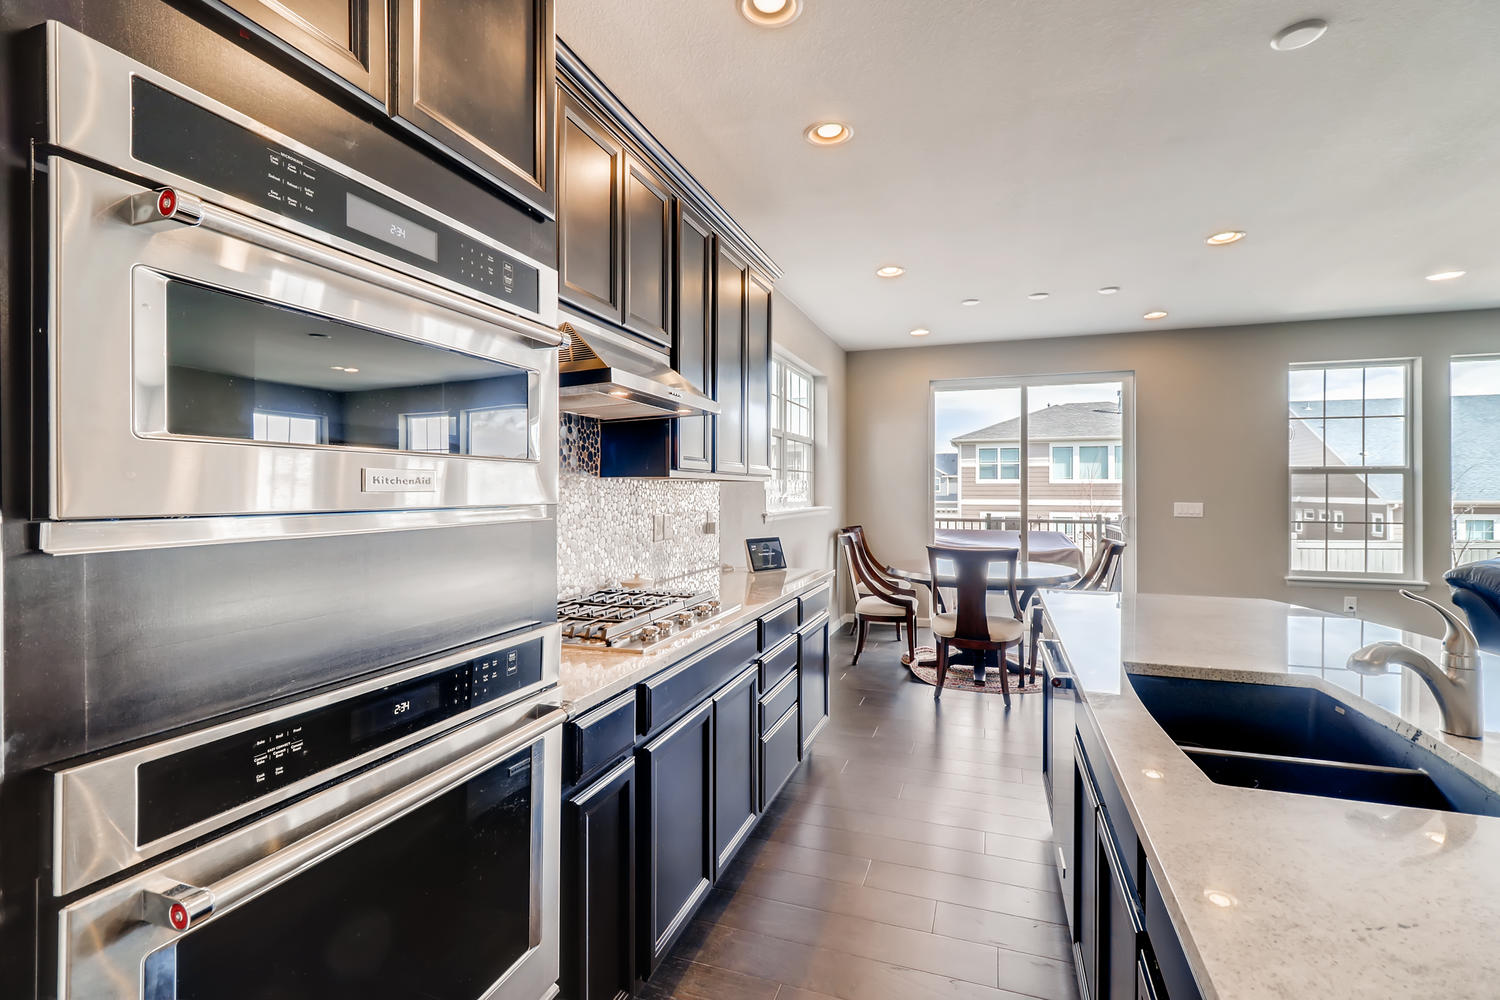 REAL ESTATE LISTING: 1029 Redbud Circle Luxury Kitchen